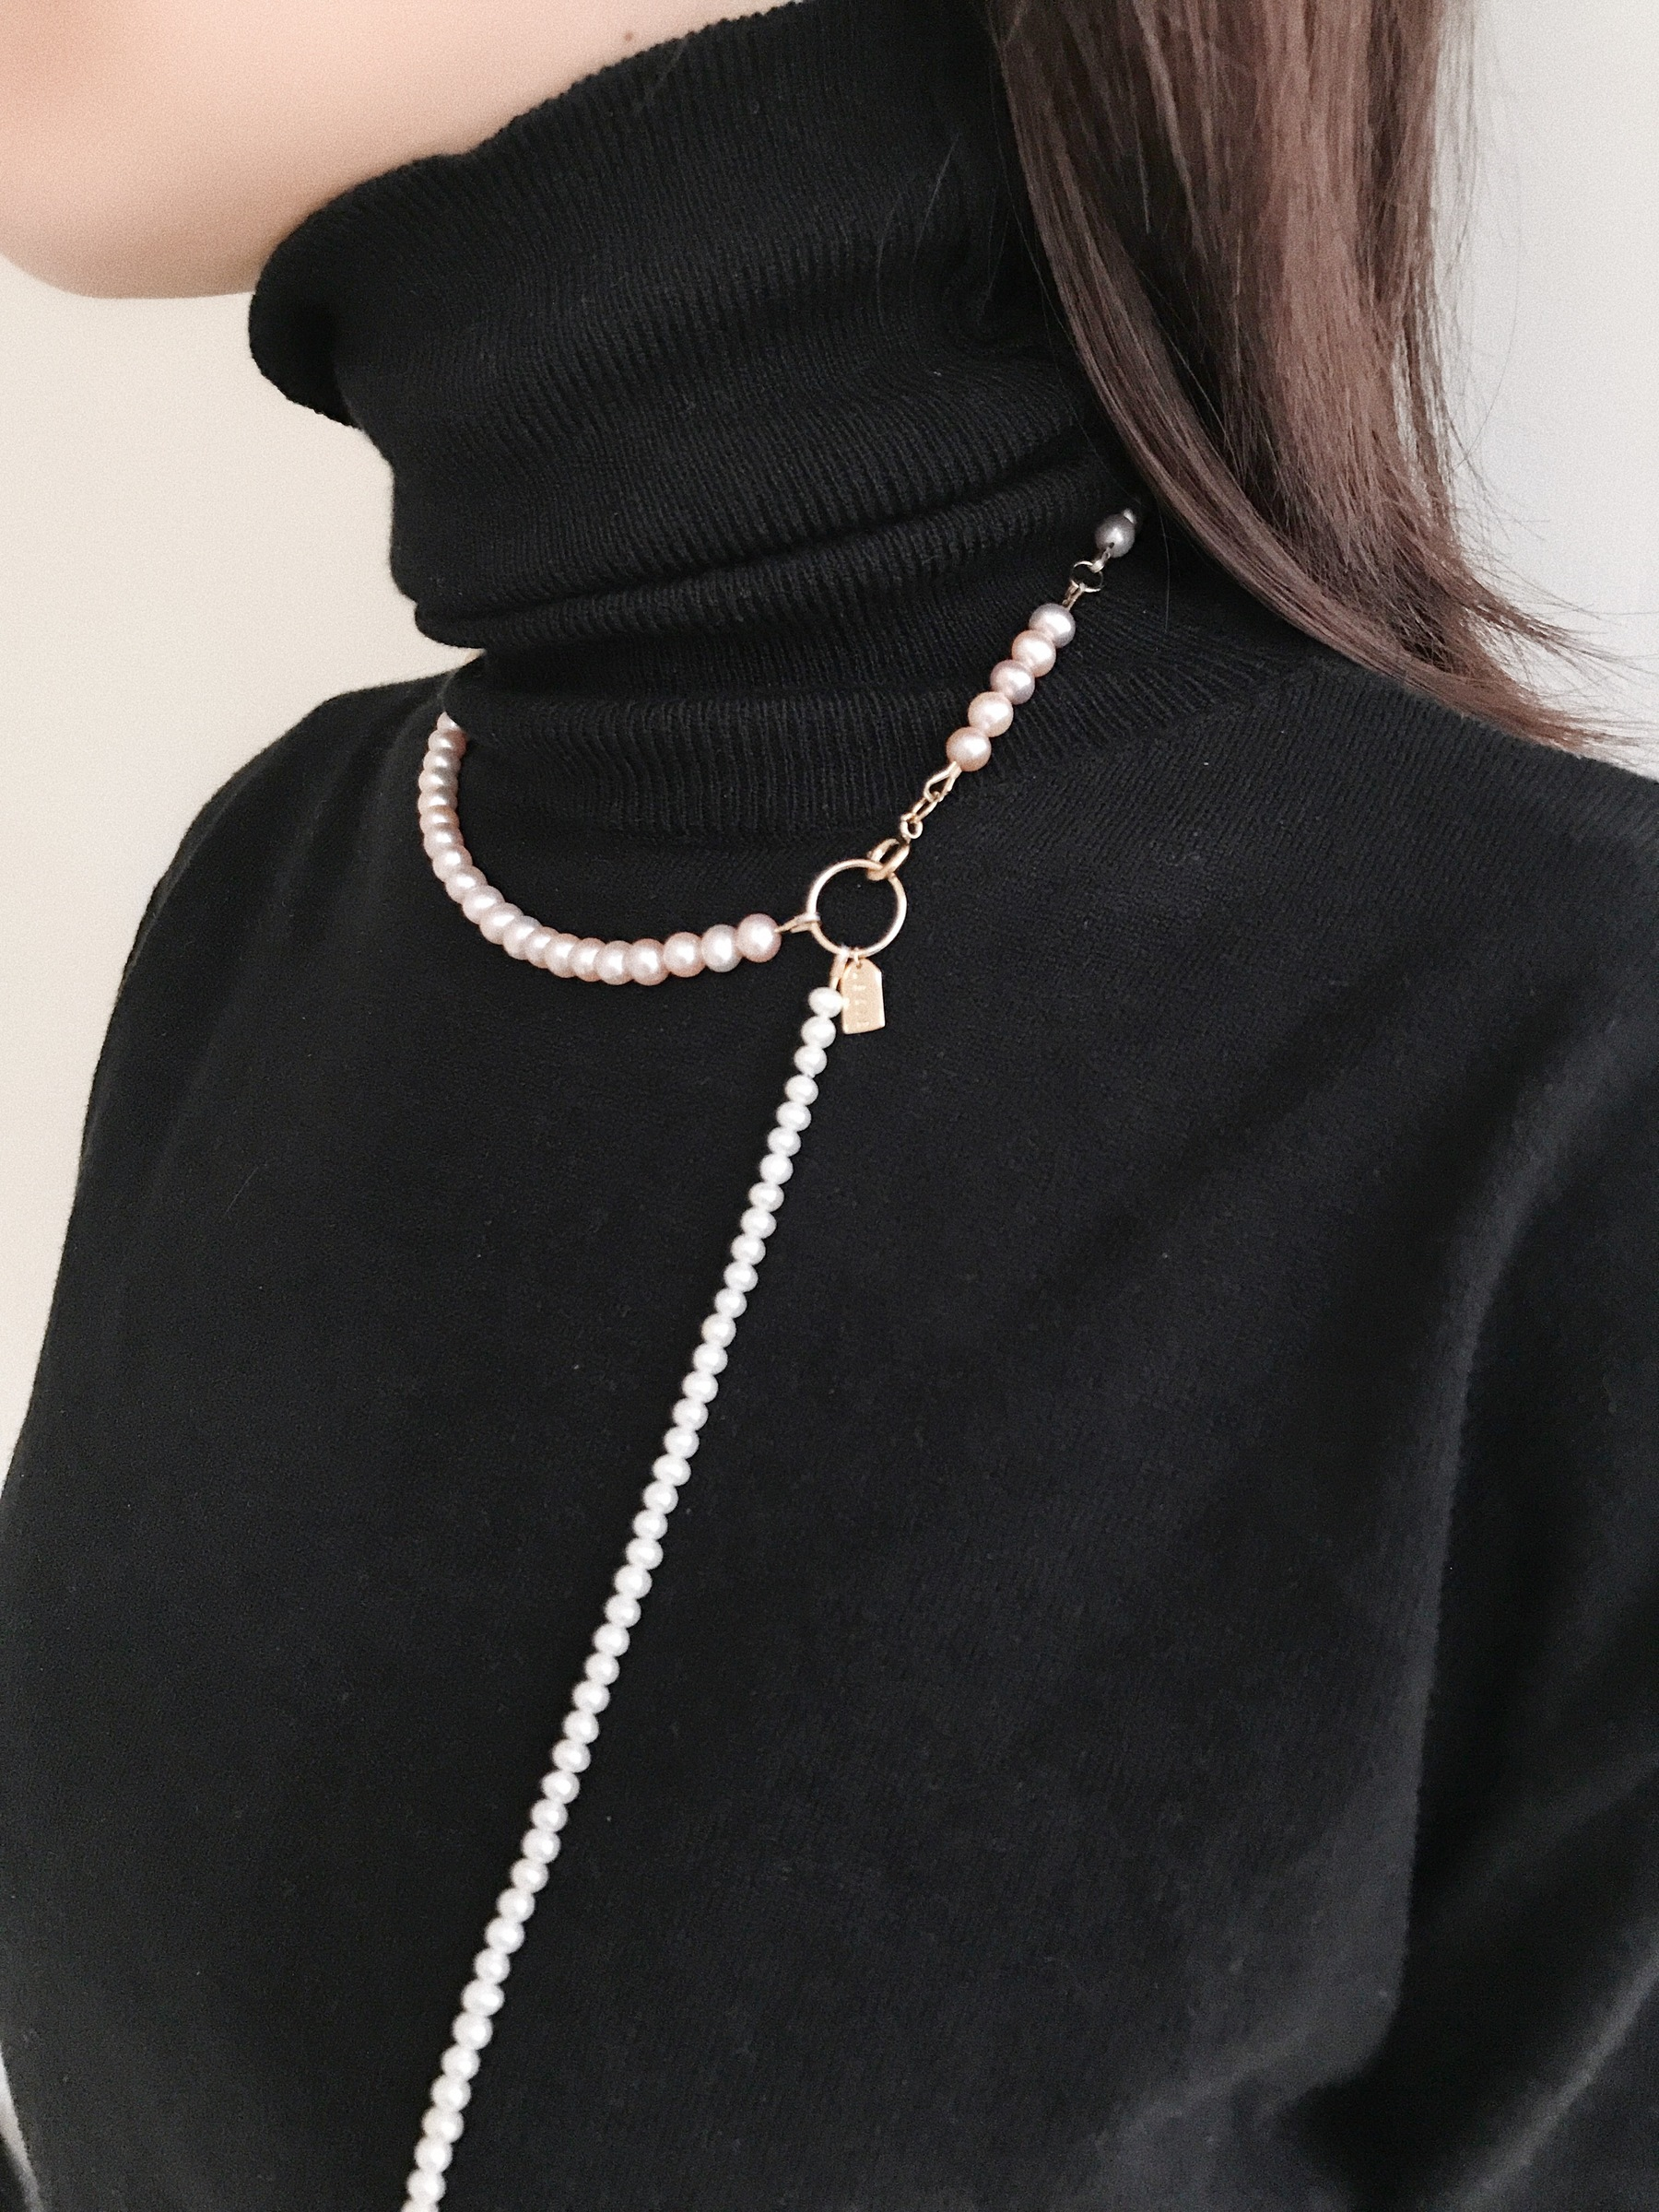 LESIS_Linked Pearl Long Necklace in Pink_04.jpg